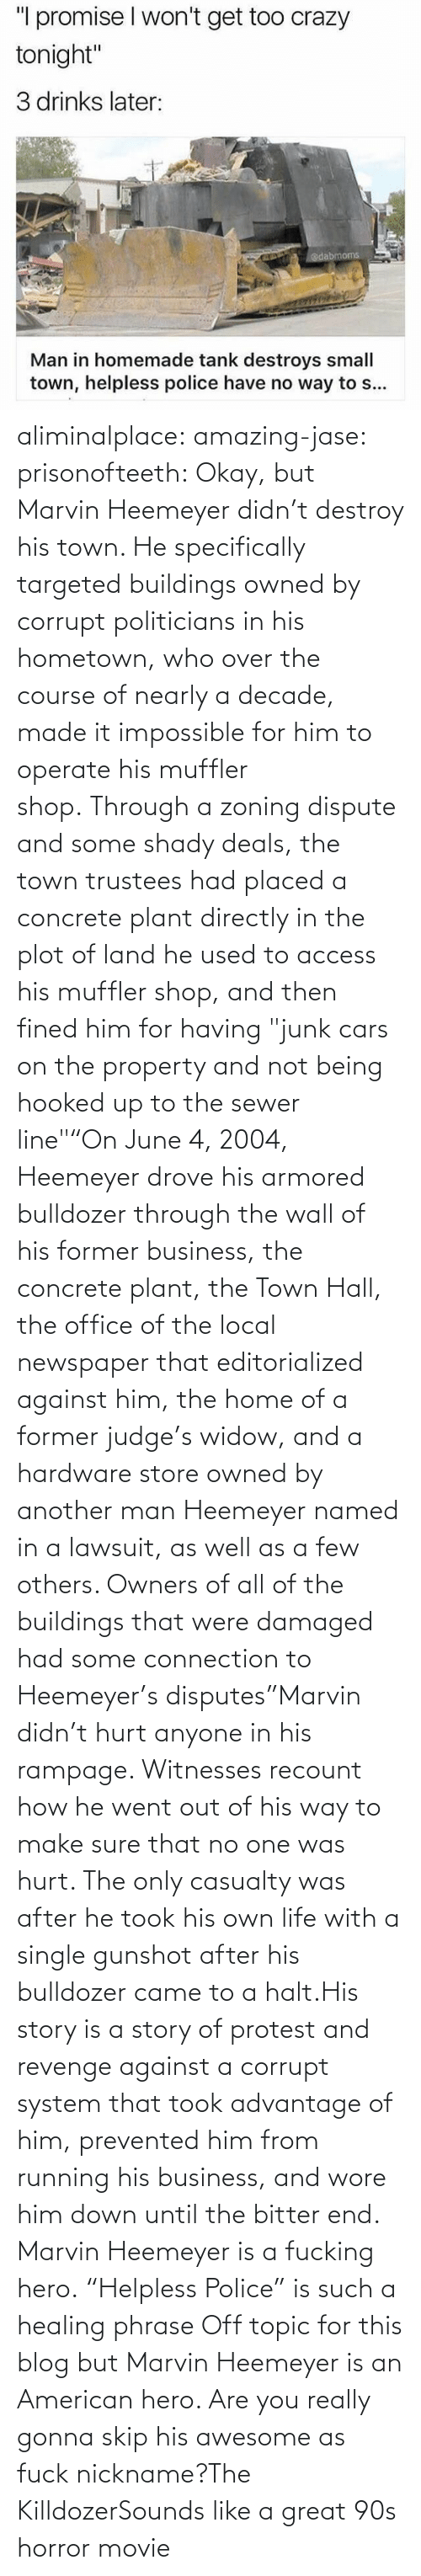 "Movie: aliminalplace: amazing-jase:  prisonofteeth: Okay, but Marvin Heemeyer didn't destroy his town. He specifically targeted buildings owned by corrupt politicians in his hometown, who over the course of nearly a decade, made it impossible for him to operate his muffler shop. Through a zoning dispute and some shady deals, the town trustees had placed a concrete plant directly in the plot of land he used to access his muffler shop, and then fined him for having ""junk cars on the property and not being hooked up to the sewer line""""On June 4, 2004, Heemeyer drove his armored bulldozer through the wall of his former business, the concrete plant, the Town Hall, the office of the local newspaper that editorialized against him, the home of a former judge's widow, and a hardware store owned by another man Heemeyer named in a lawsuit, as well as a few others. Owners of all of the buildings that were damaged had some connection to Heemeyer's disputes""Marvin didn't hurt anyone in his rampage. Witnesses recount how he went out of his way to make sure that no one was hurt. The only casualty was after he took his own life with a single gunshot after his bulldozer came to a halt.His story is a story of protest and revenge against a corrupt system that took advantage of him, prevented him from running his business, and wore him down until the bitter end. Marvin Heemeyer is a fucking hero. ""Helpless Police"" is such a healing phrase    Off topic for this blog but Marvin Heemeyer is an American hero.     Are you really gonna skip his awesome as fuck nickname?The KilldozerSounds like a great 90s horror movie"